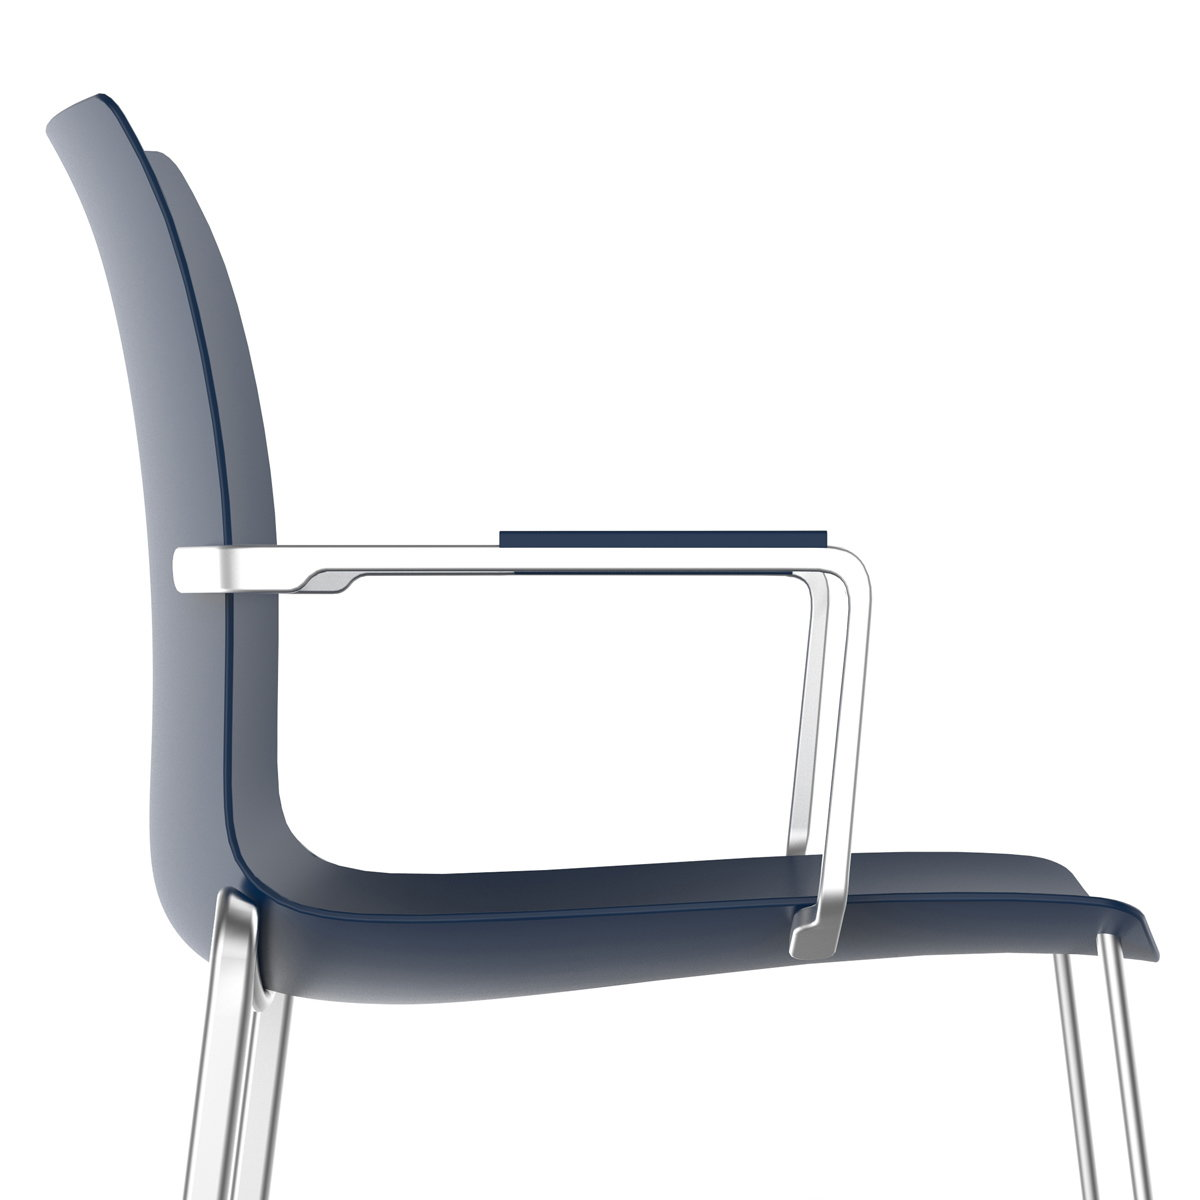 Carl Gustav Magnusson Designs Zinc Chair for Allseating